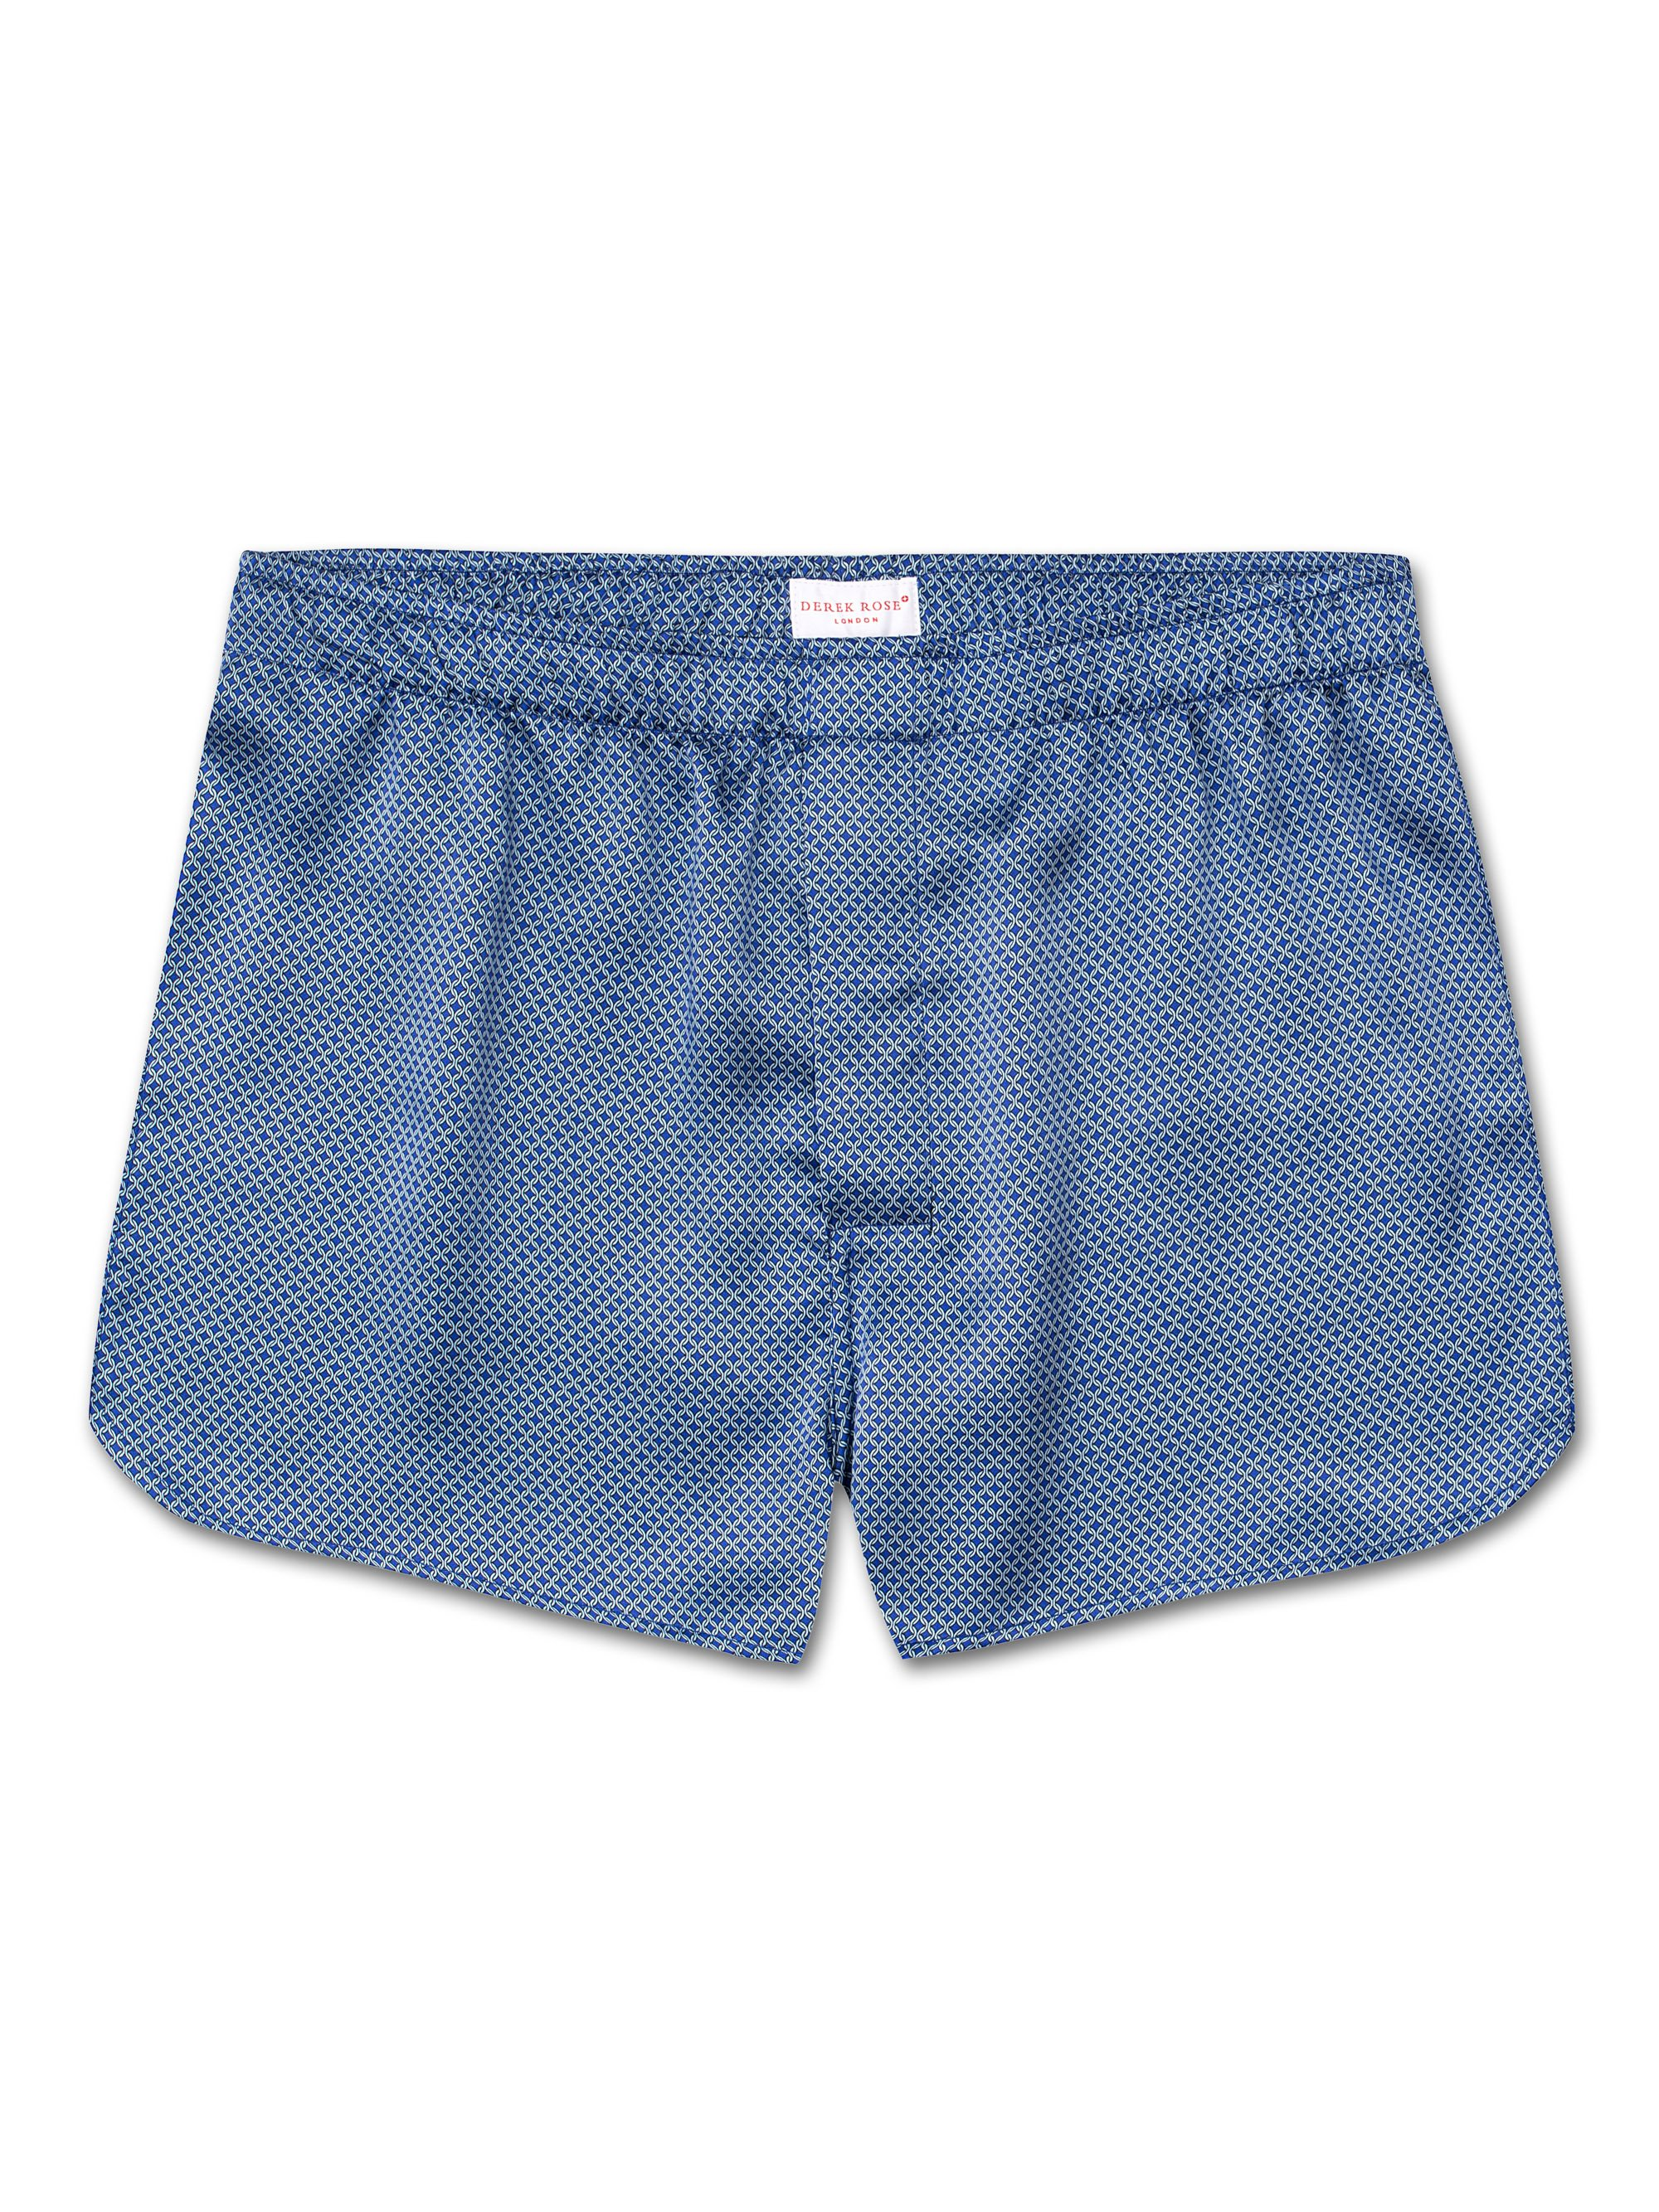 Men's Modern Fit Boxer Shorts Brindisi 4 Pure Silk Ice